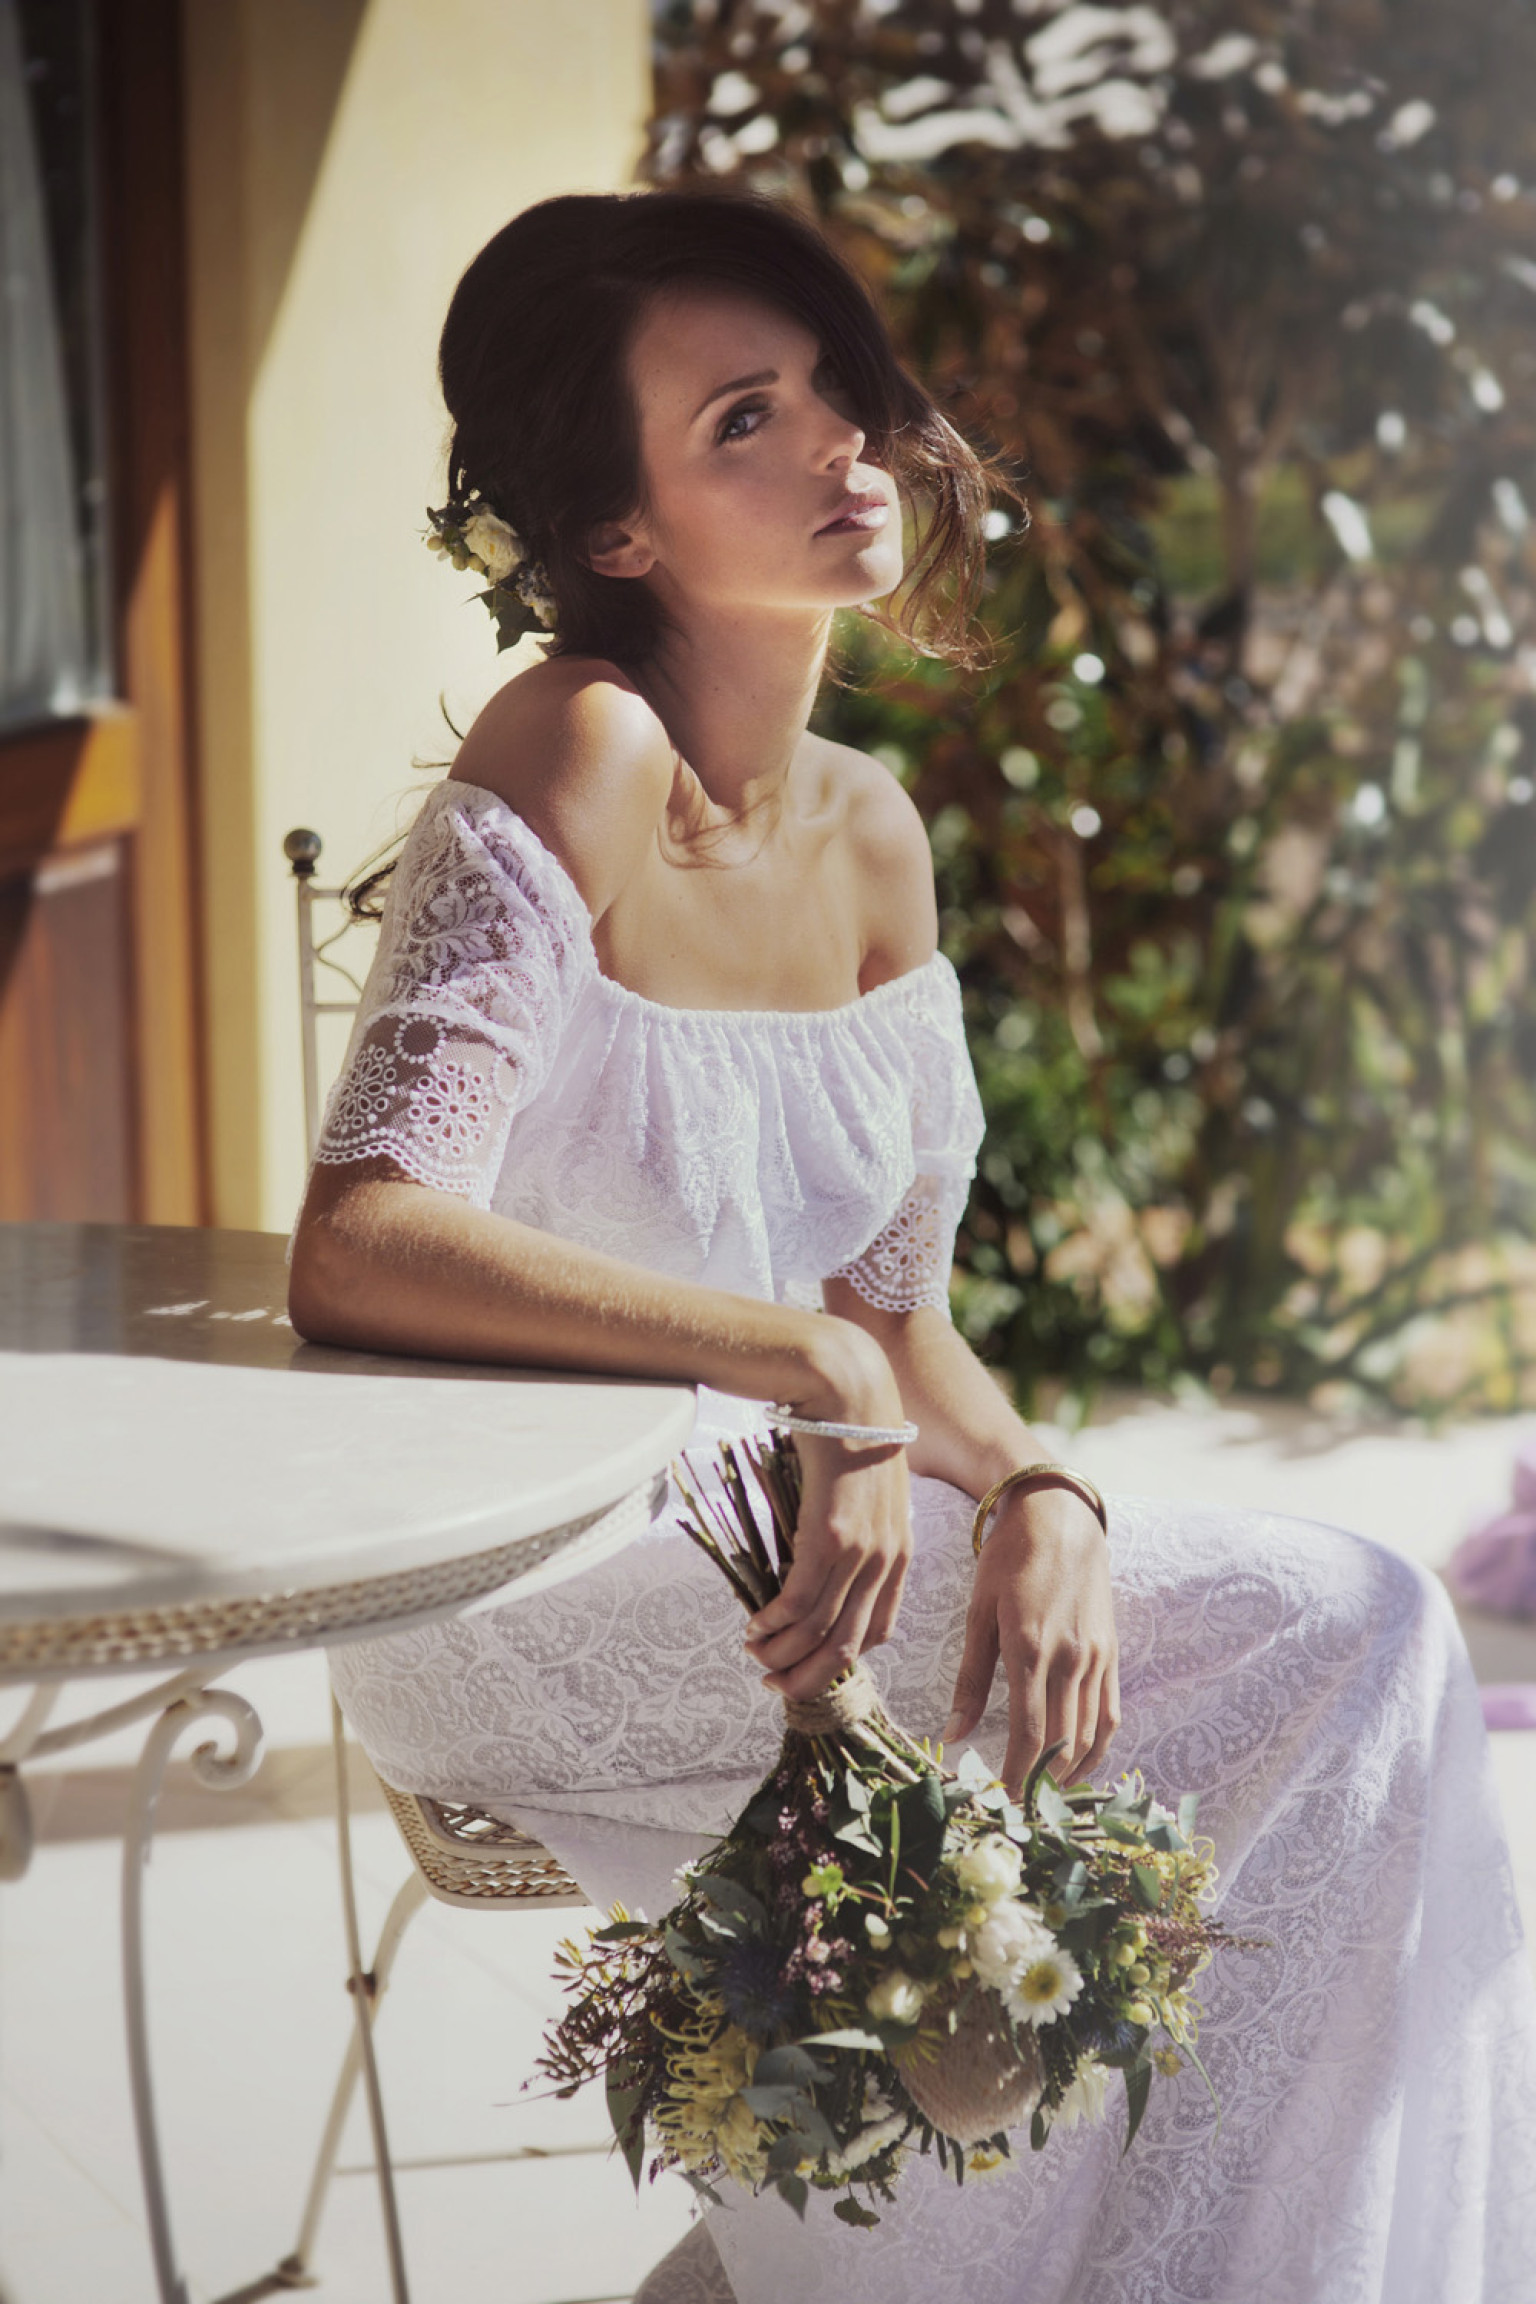 Vintage style wedding dresses inspired by the 1970s photos vintage style wedding dresses inspired by the 1970s photos huffpost ombrellifo Images